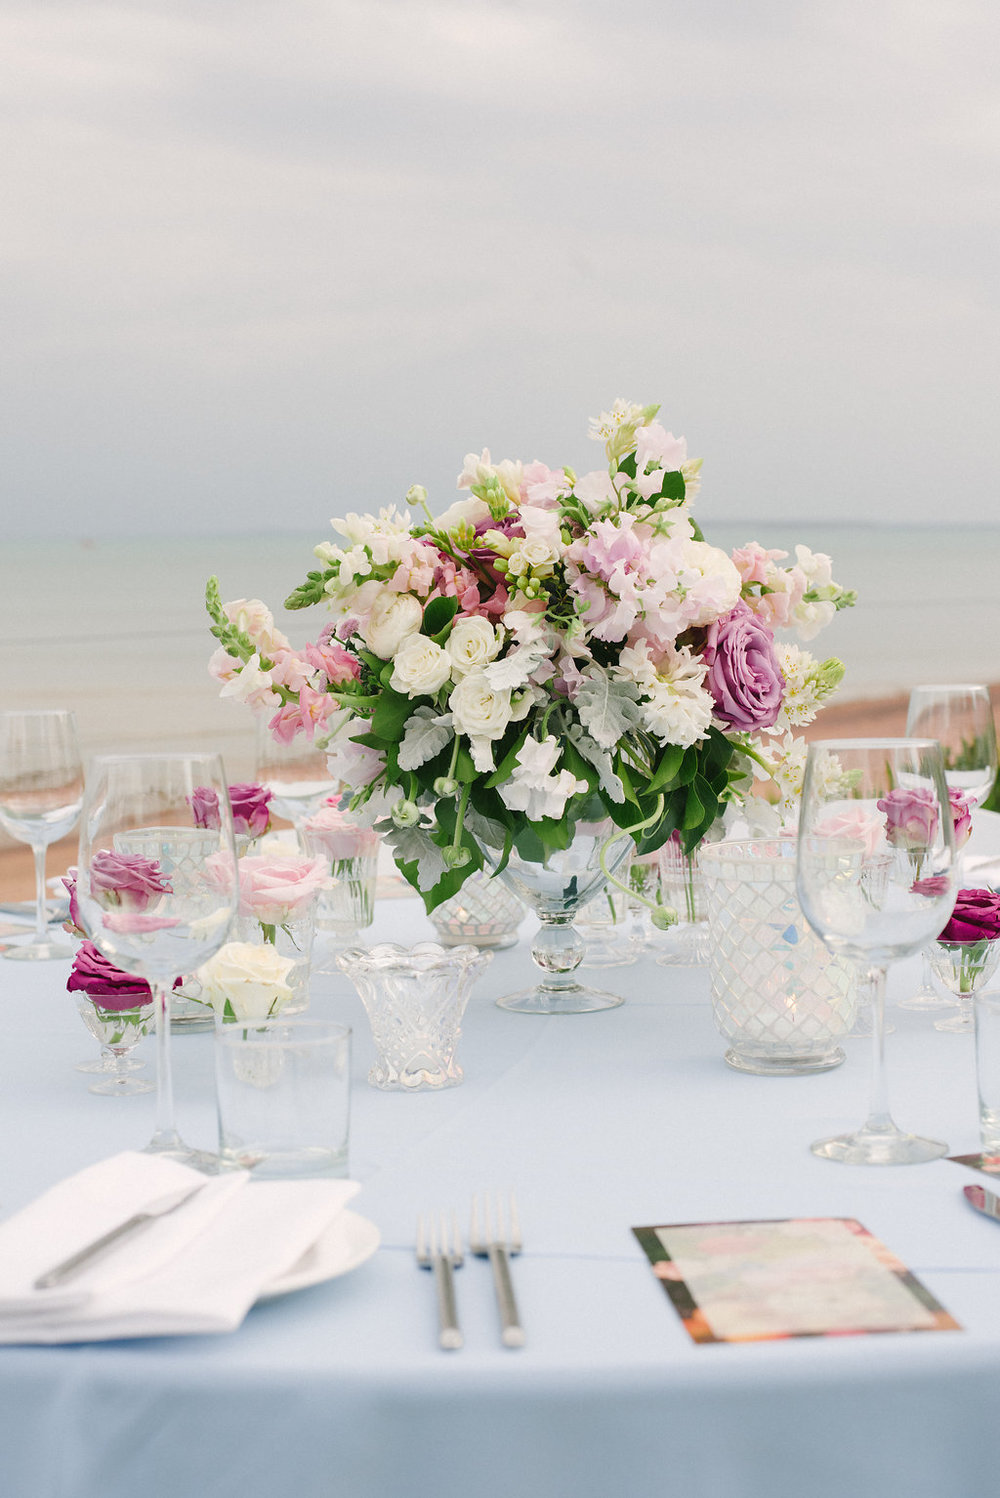 wedding table centrepiece with roses and snapdragons